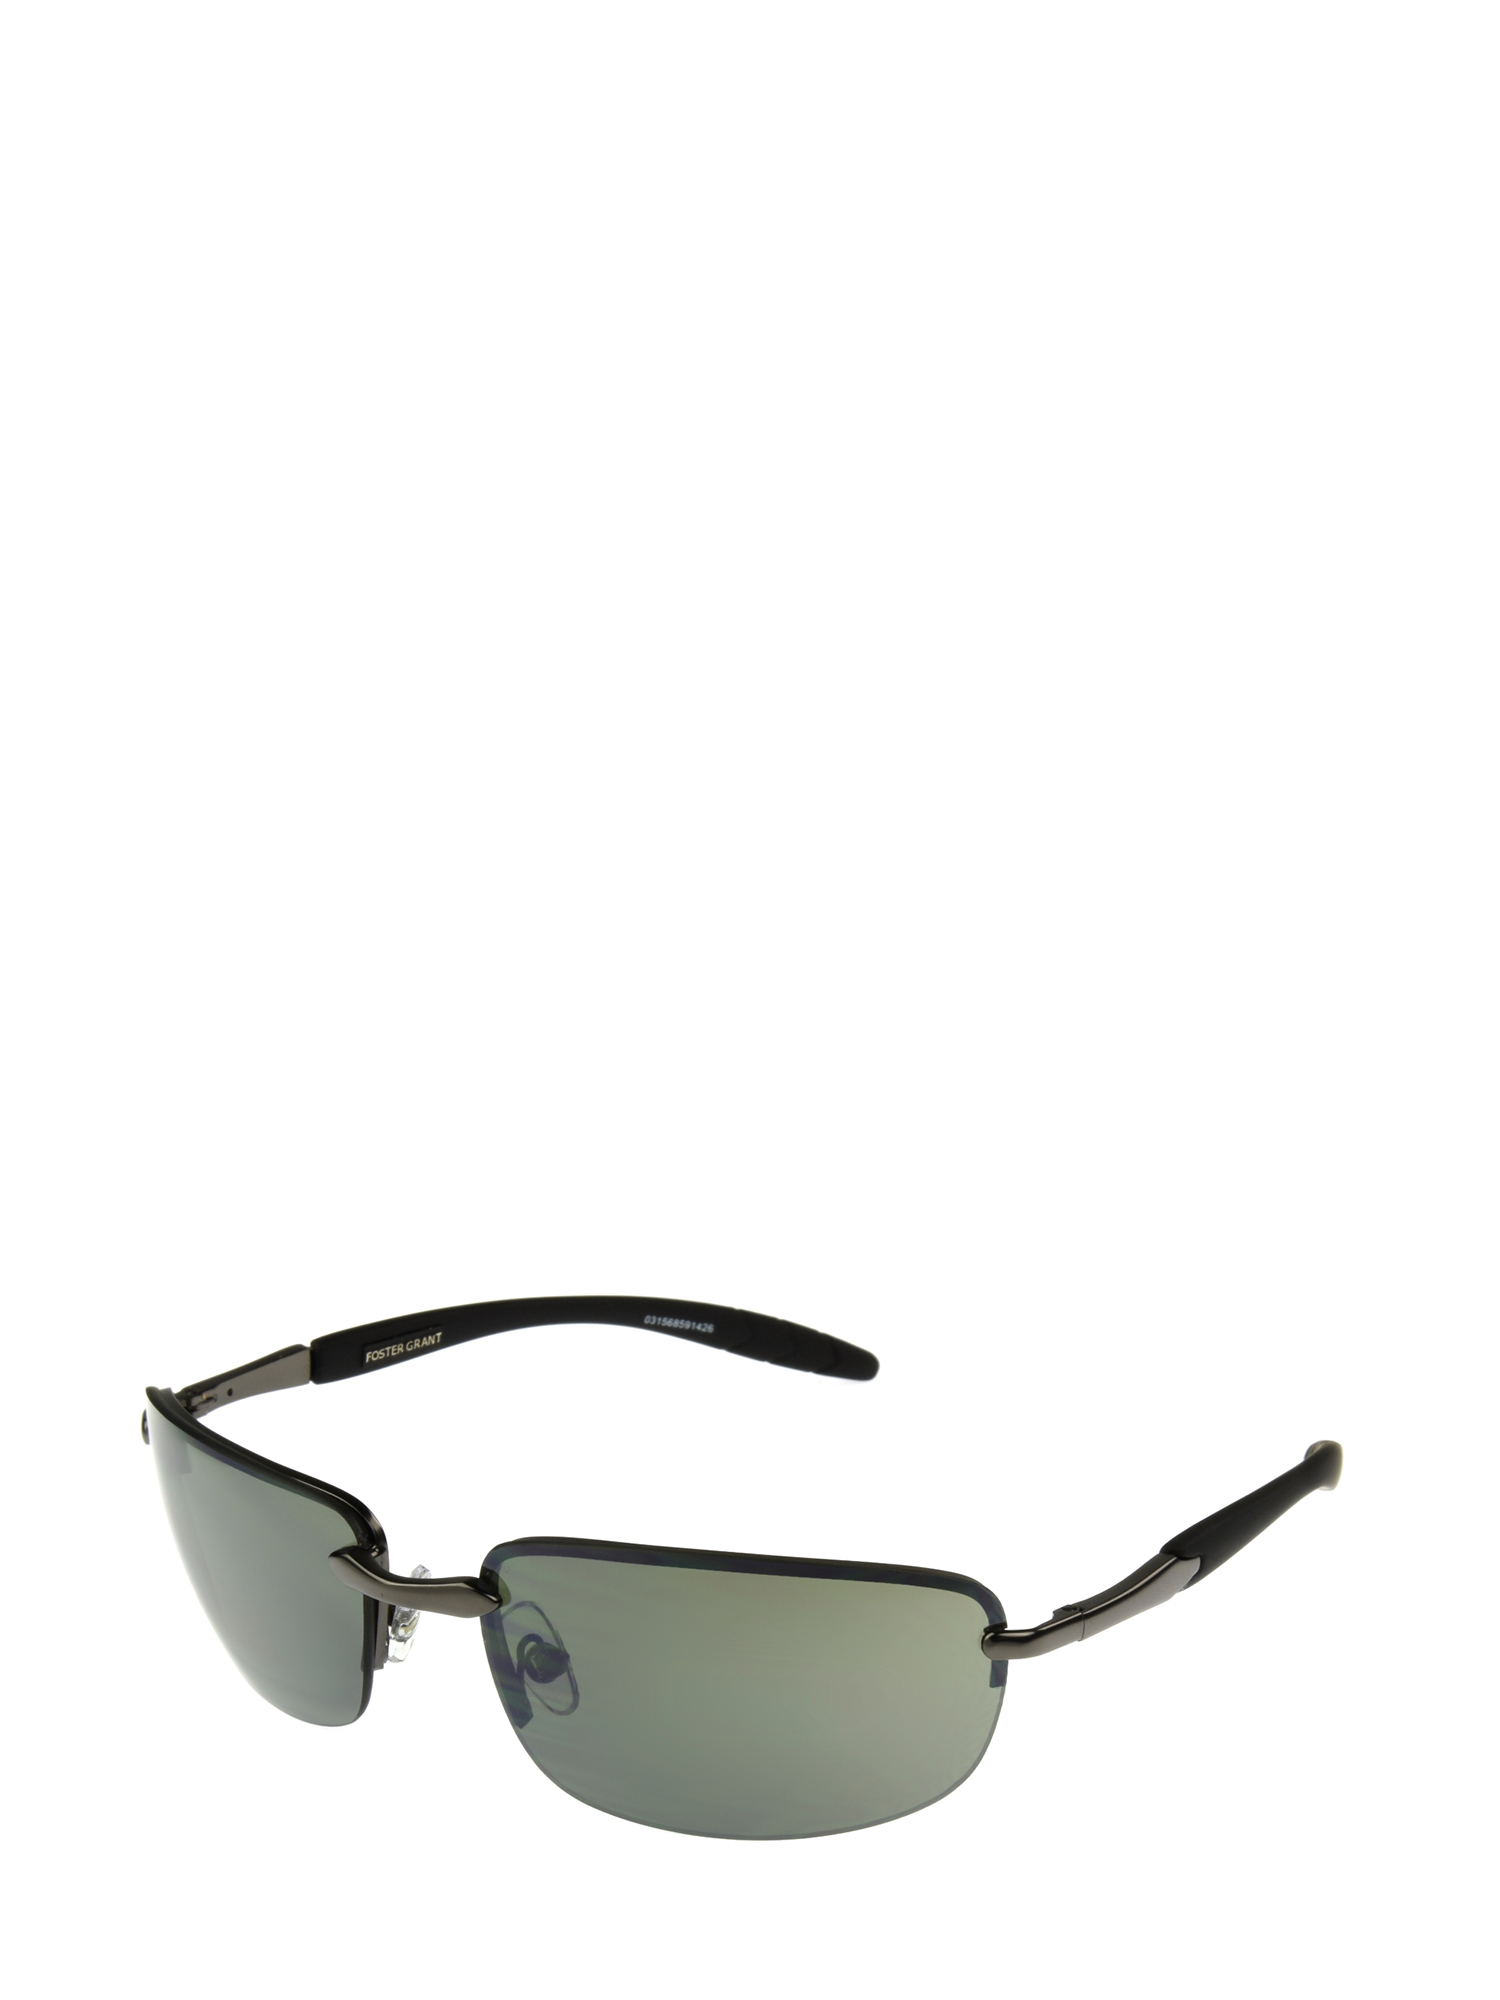 0292c801e5 Foster Grant - Drivers Mens Rectangle 2 Sunglasses - Walmart.com